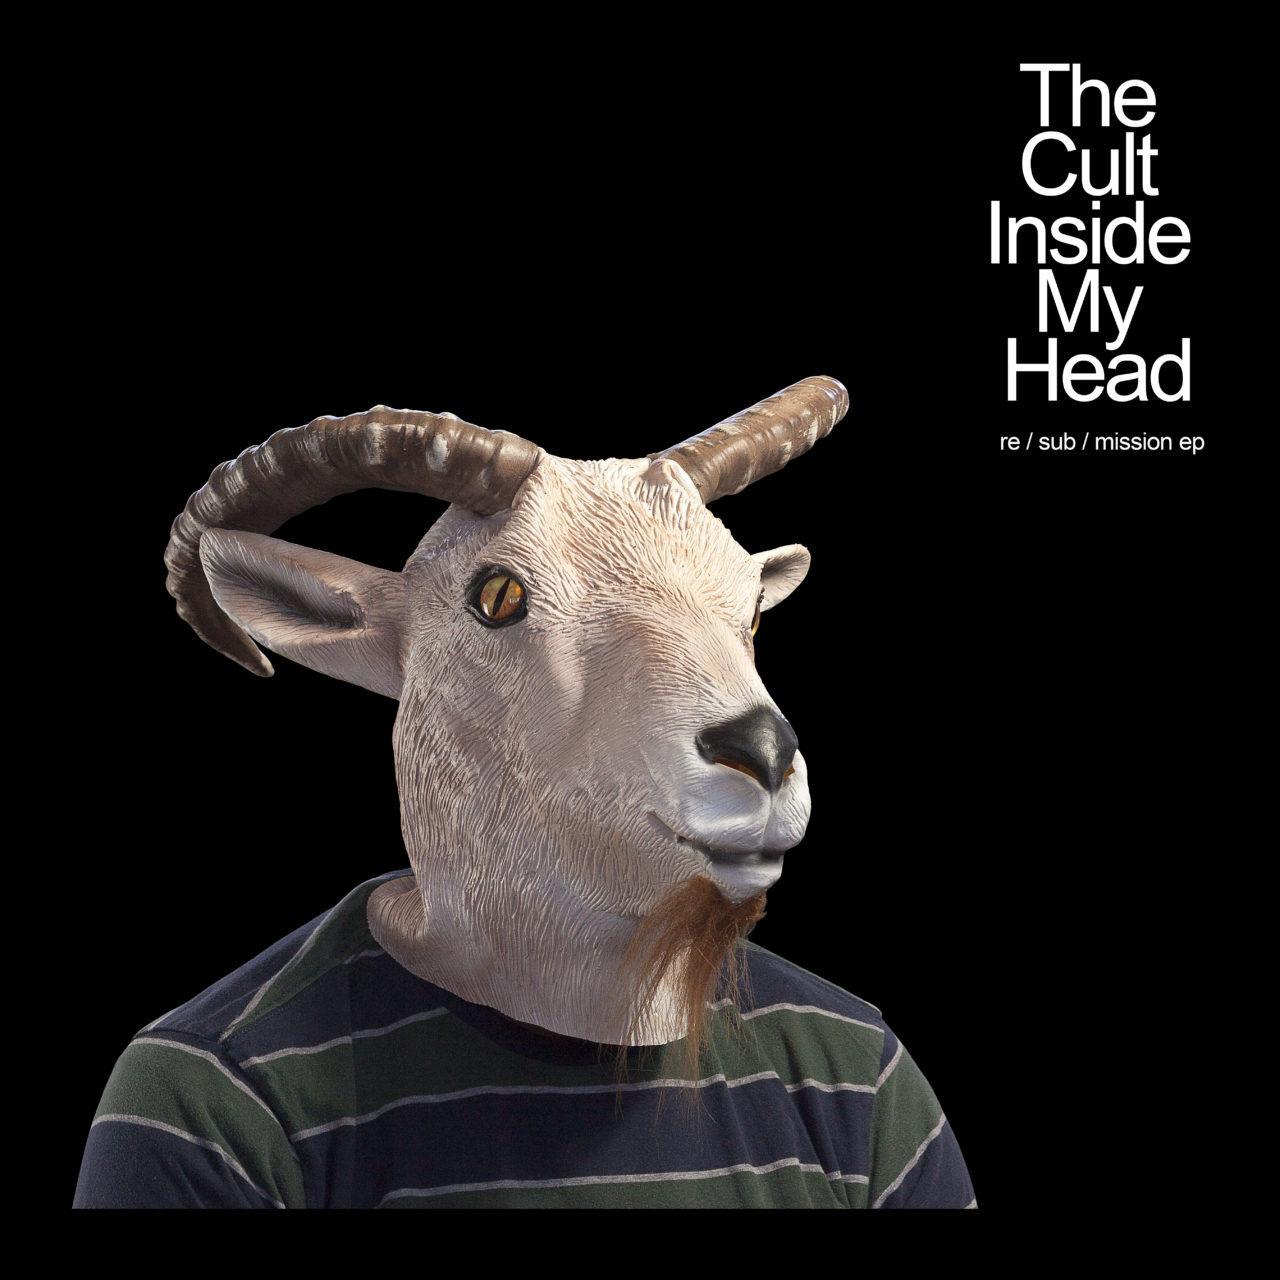 The Cult Inside my Head, re/sub/mission ep cover image